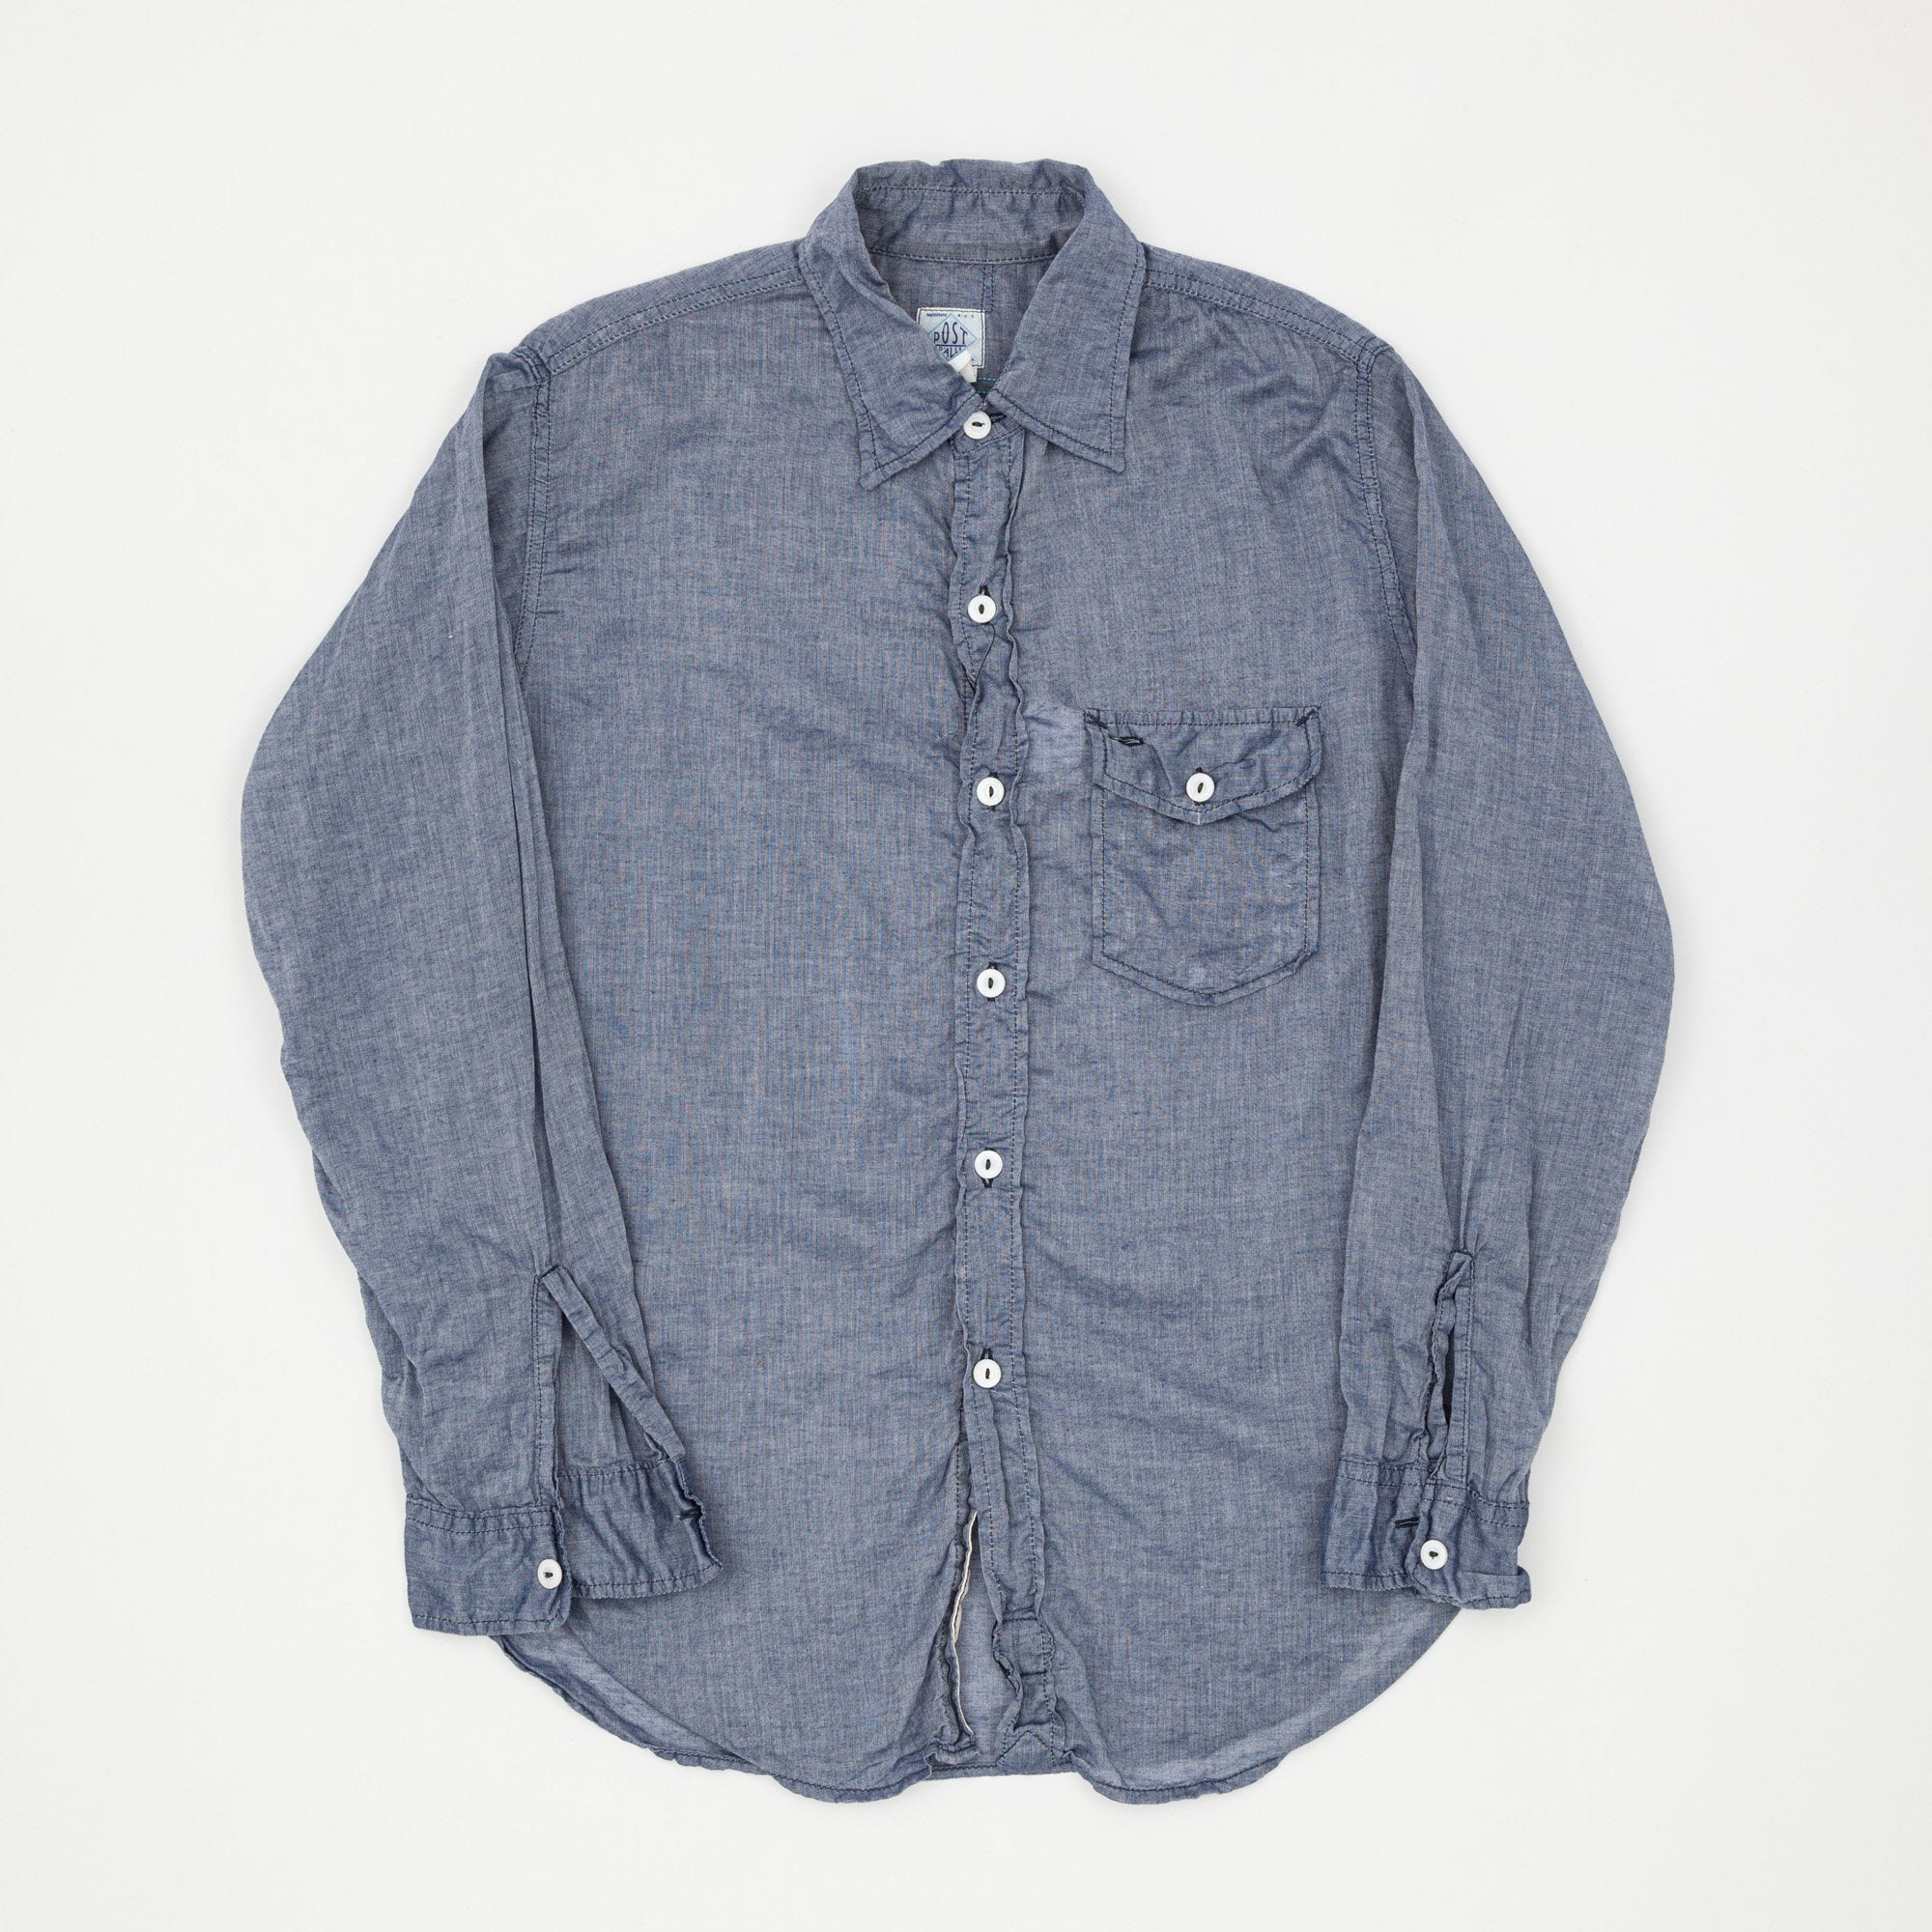 Post Overalls Lightweight Chambray Shirt